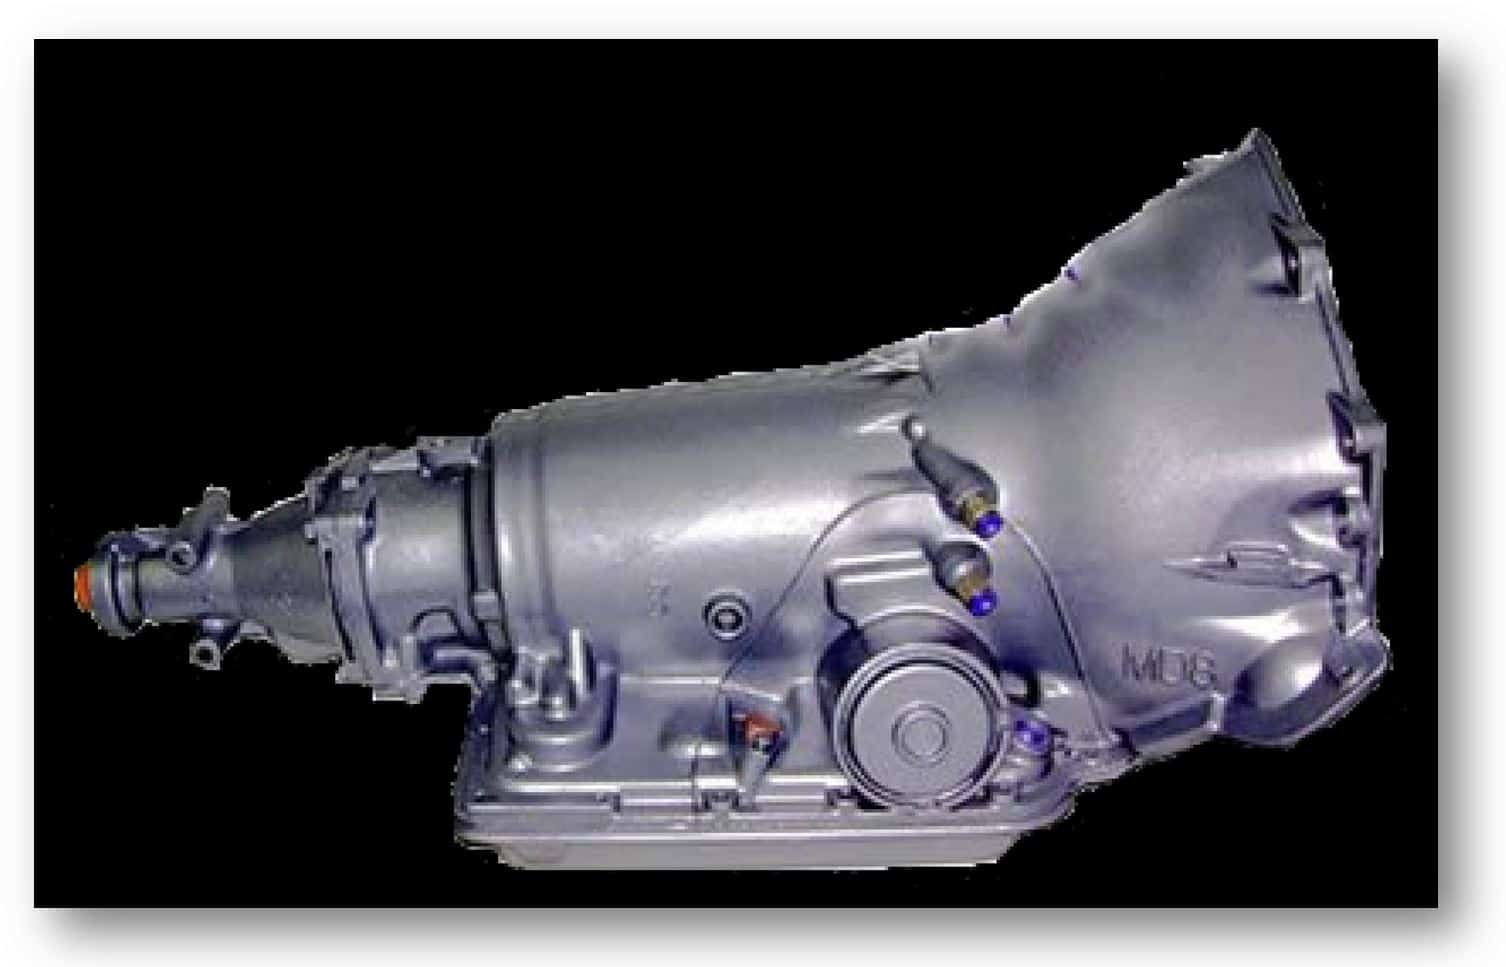 Chevrolet Sonic Repair Manual: Torque Converter Housing with Fluid Pump Assembly Removal (Non Hybrid)